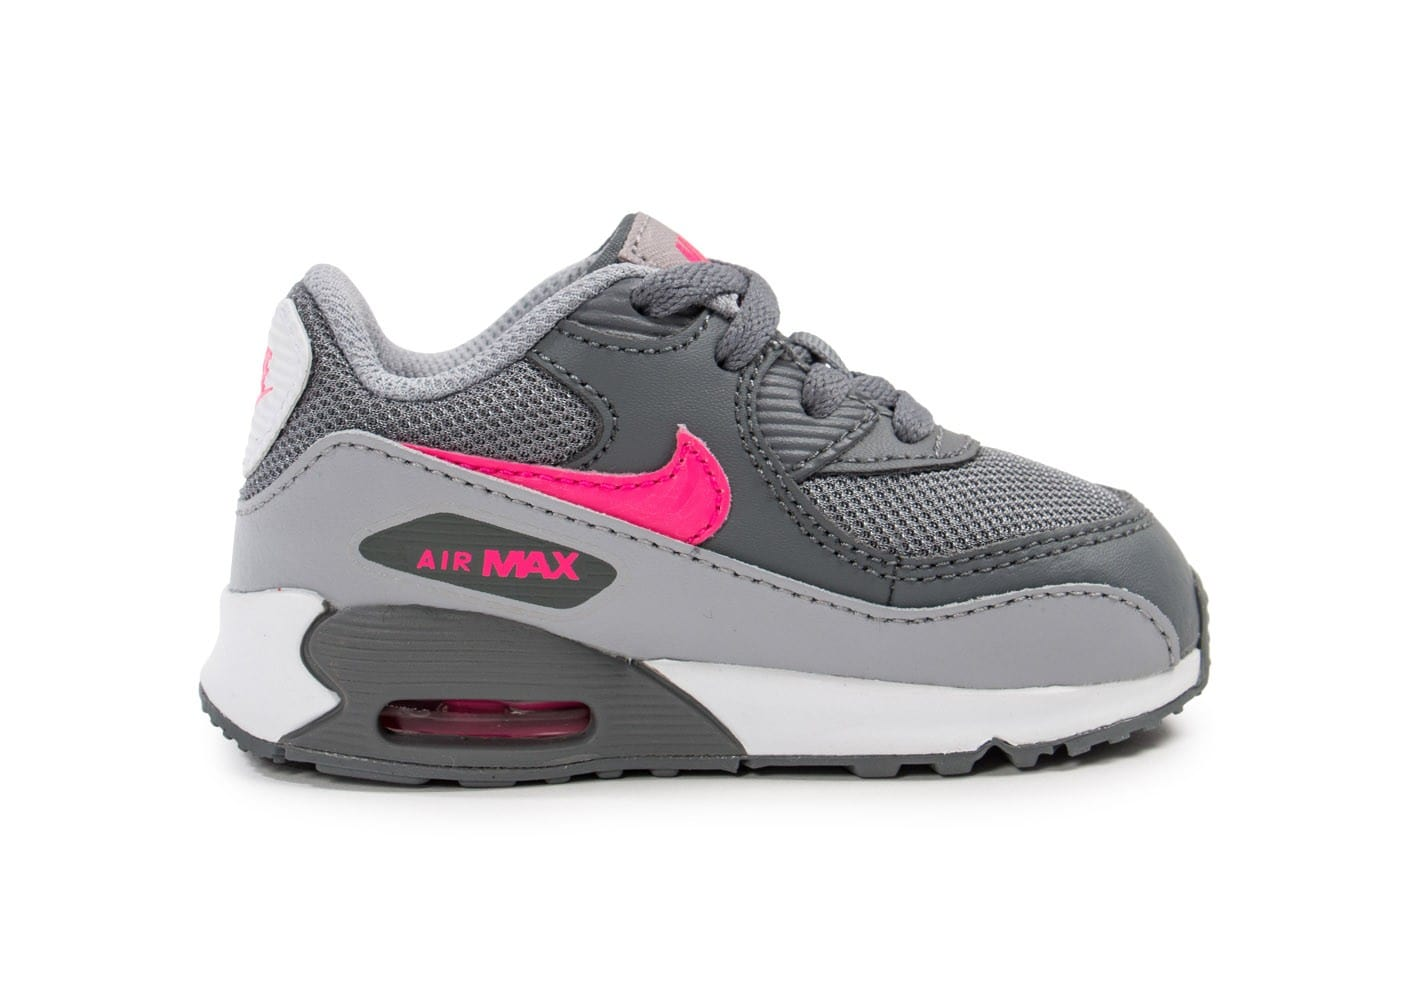 promo code f3186 4fc38 ... chaussures nike air max 90 mesh bebe grise et rose vue interieure